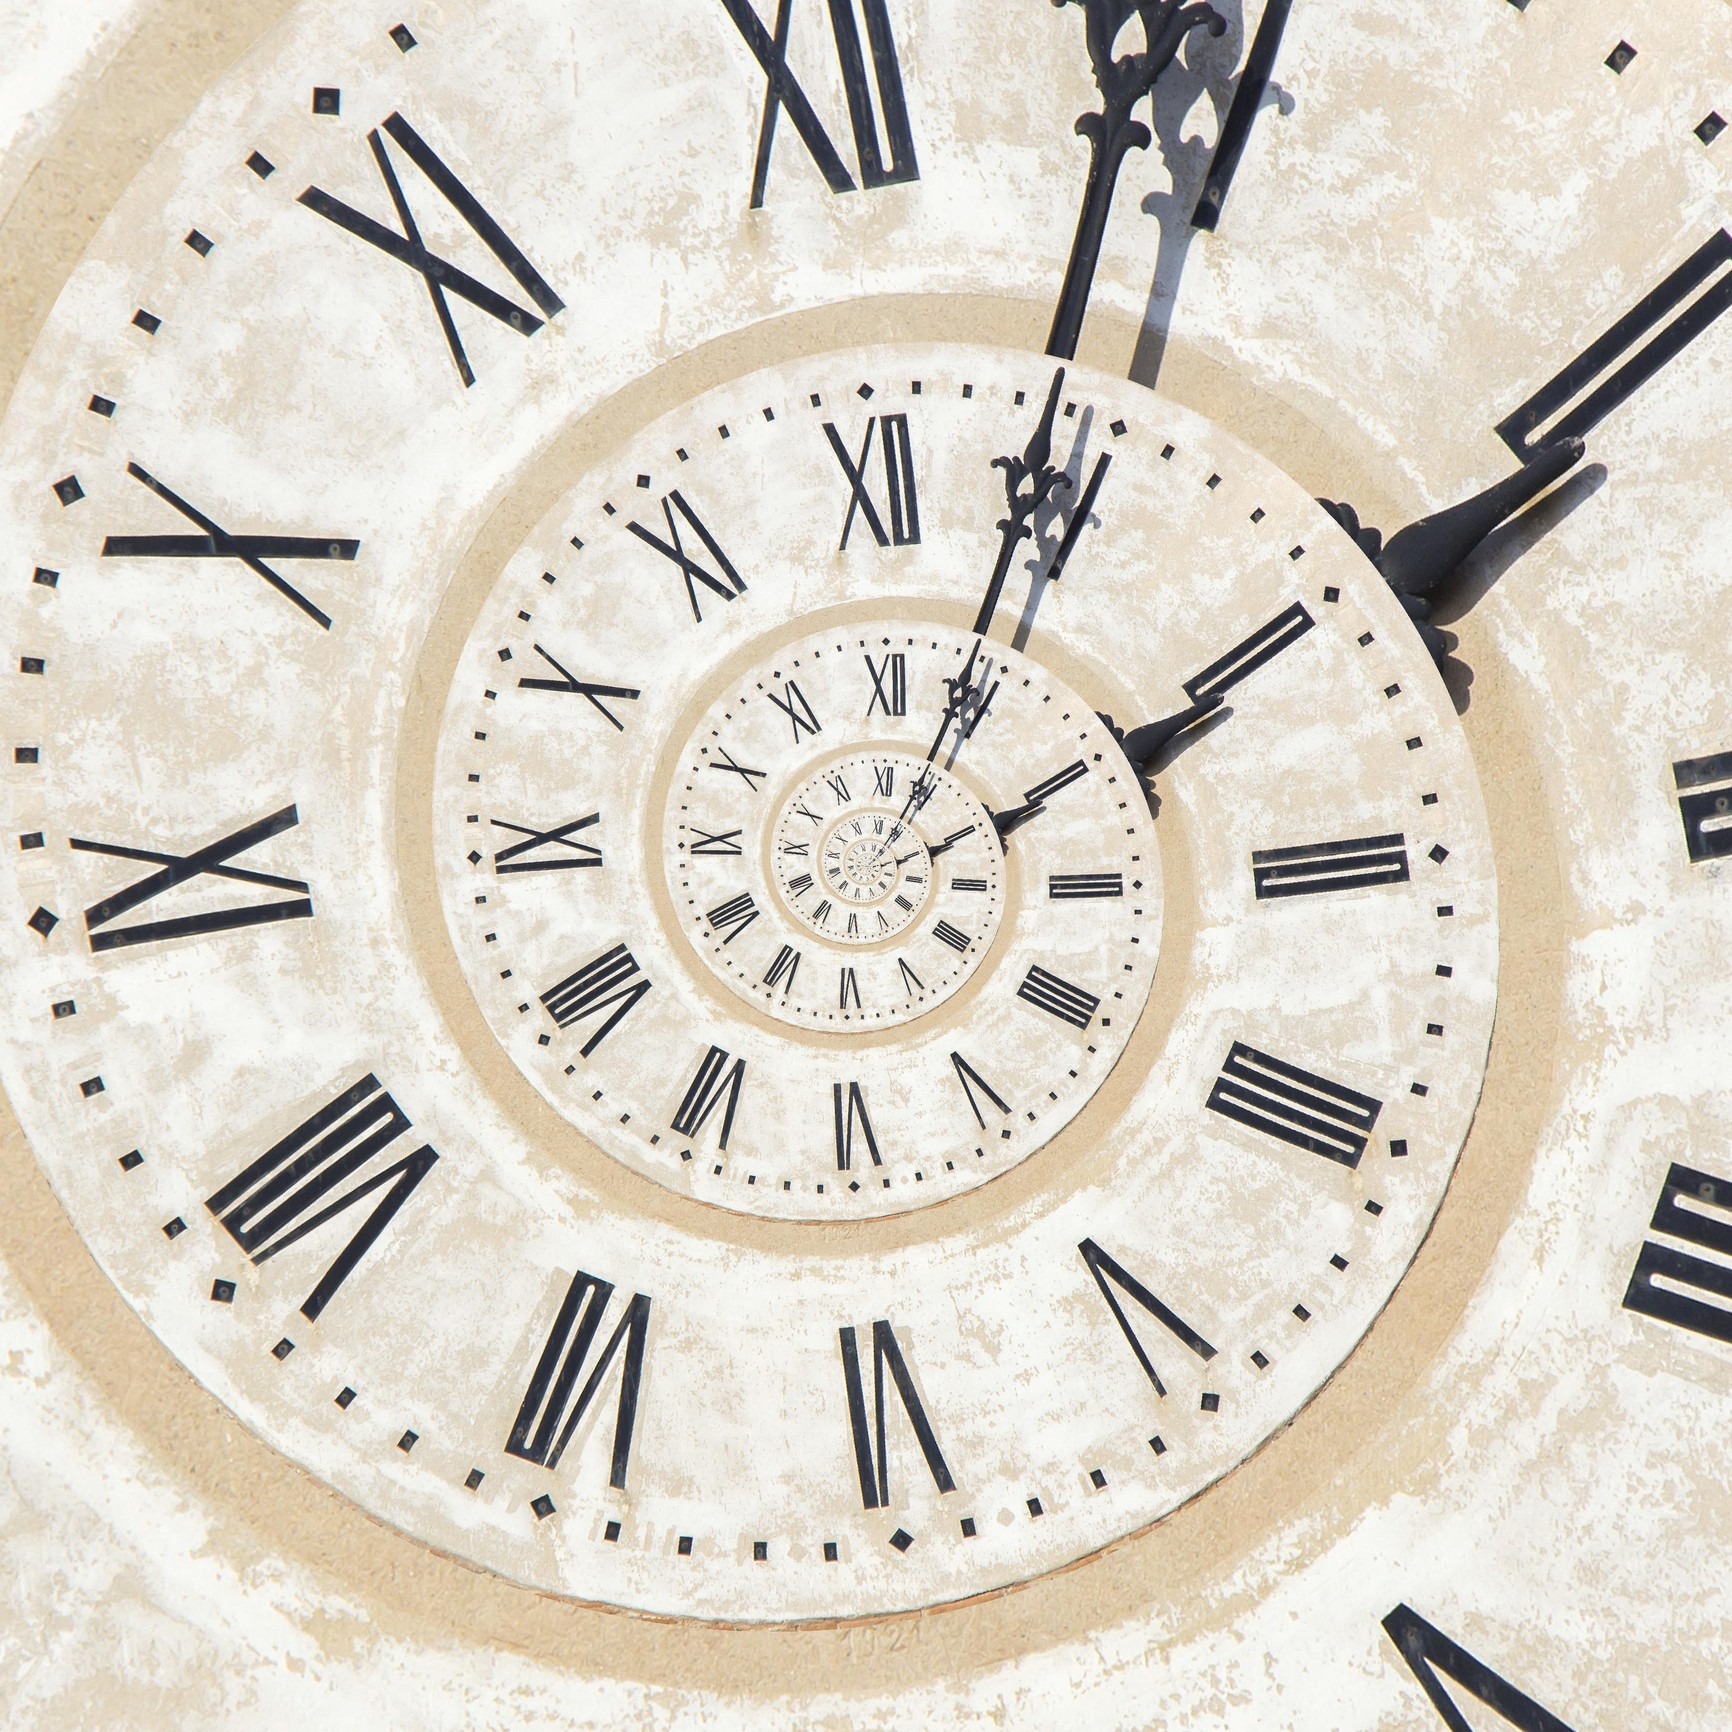 Is time real? © Getty Images